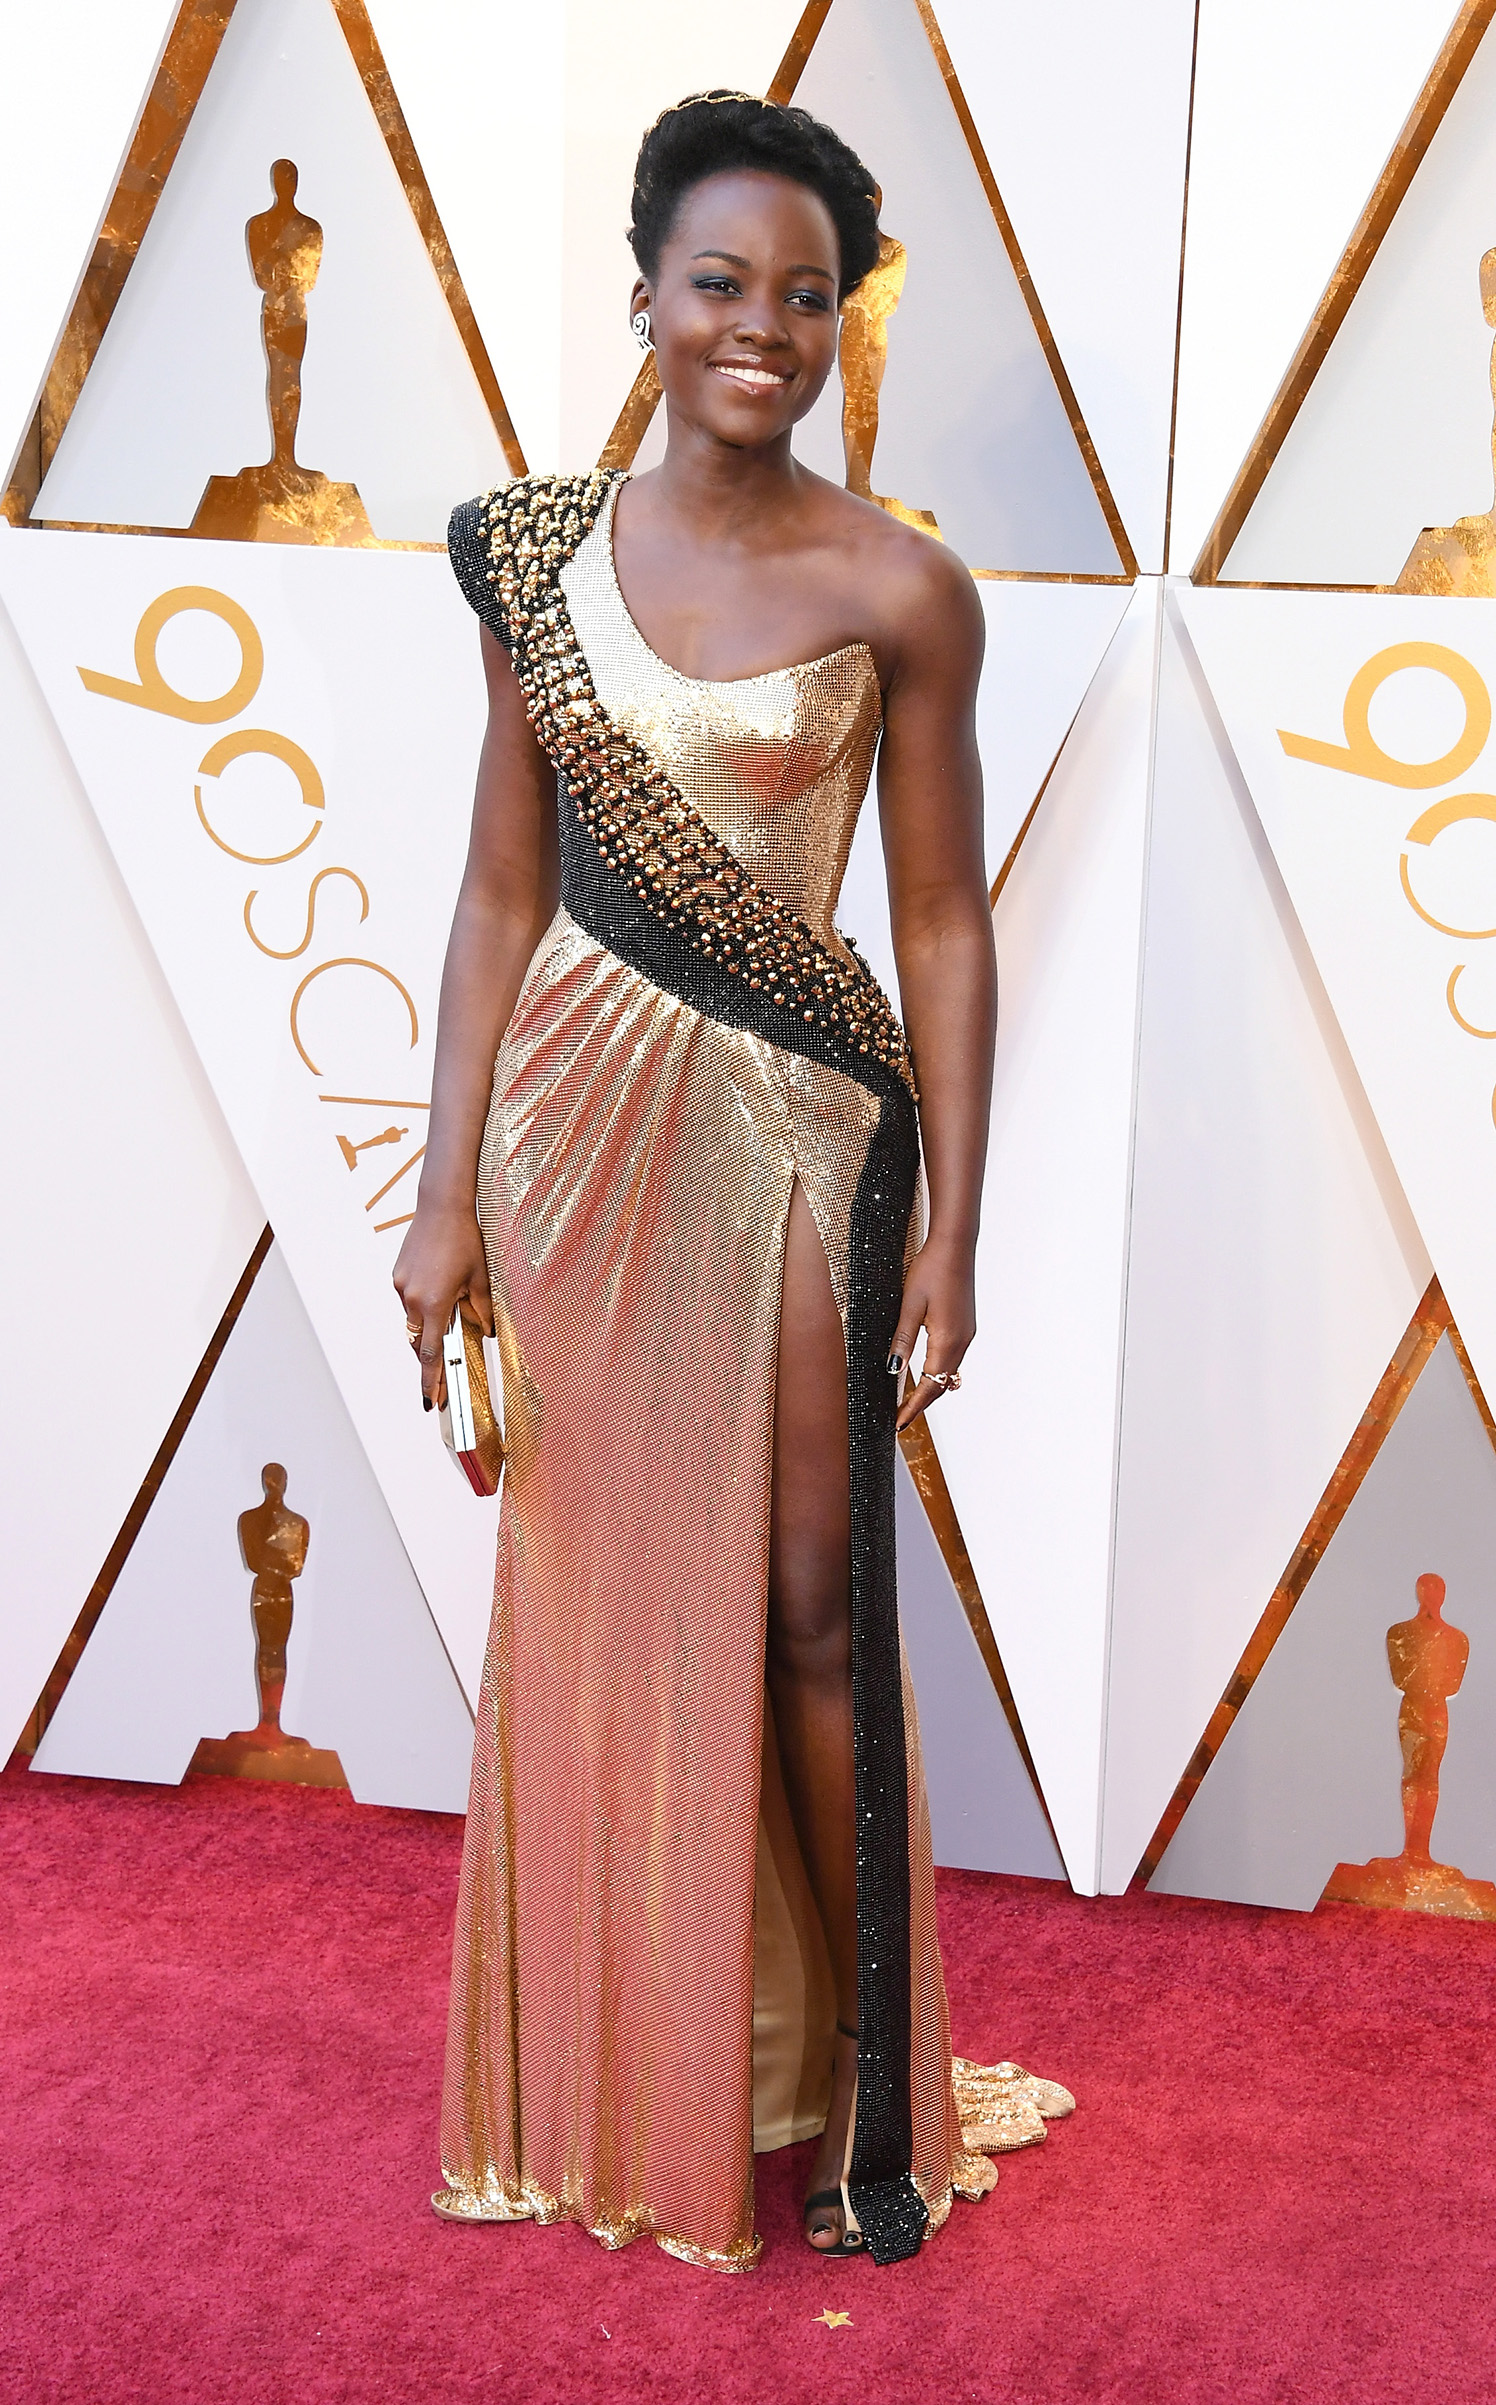 Lupita Nyong'o attends the 90th Annual Academy Awards at Hollywood & Highland Center on March 4.